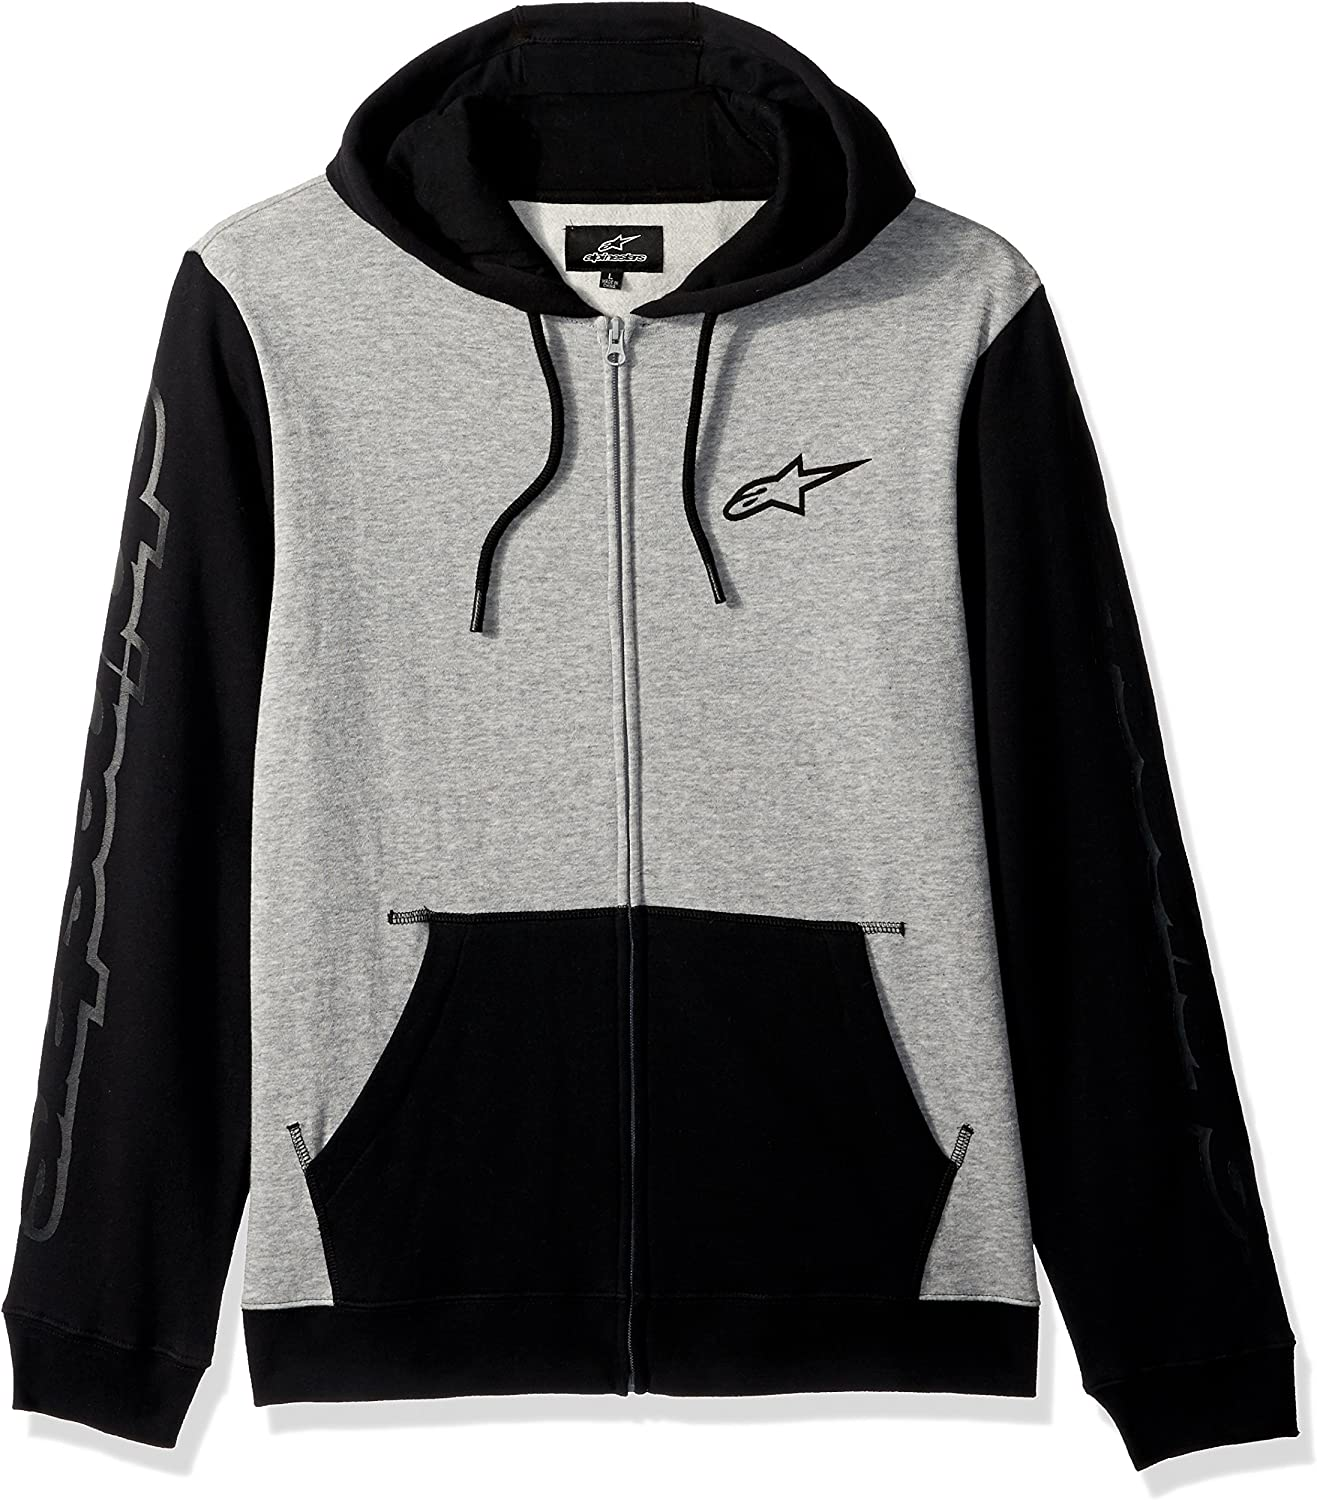 Alpinestars Herren Fleece Ageless Ii: Alpinestars: